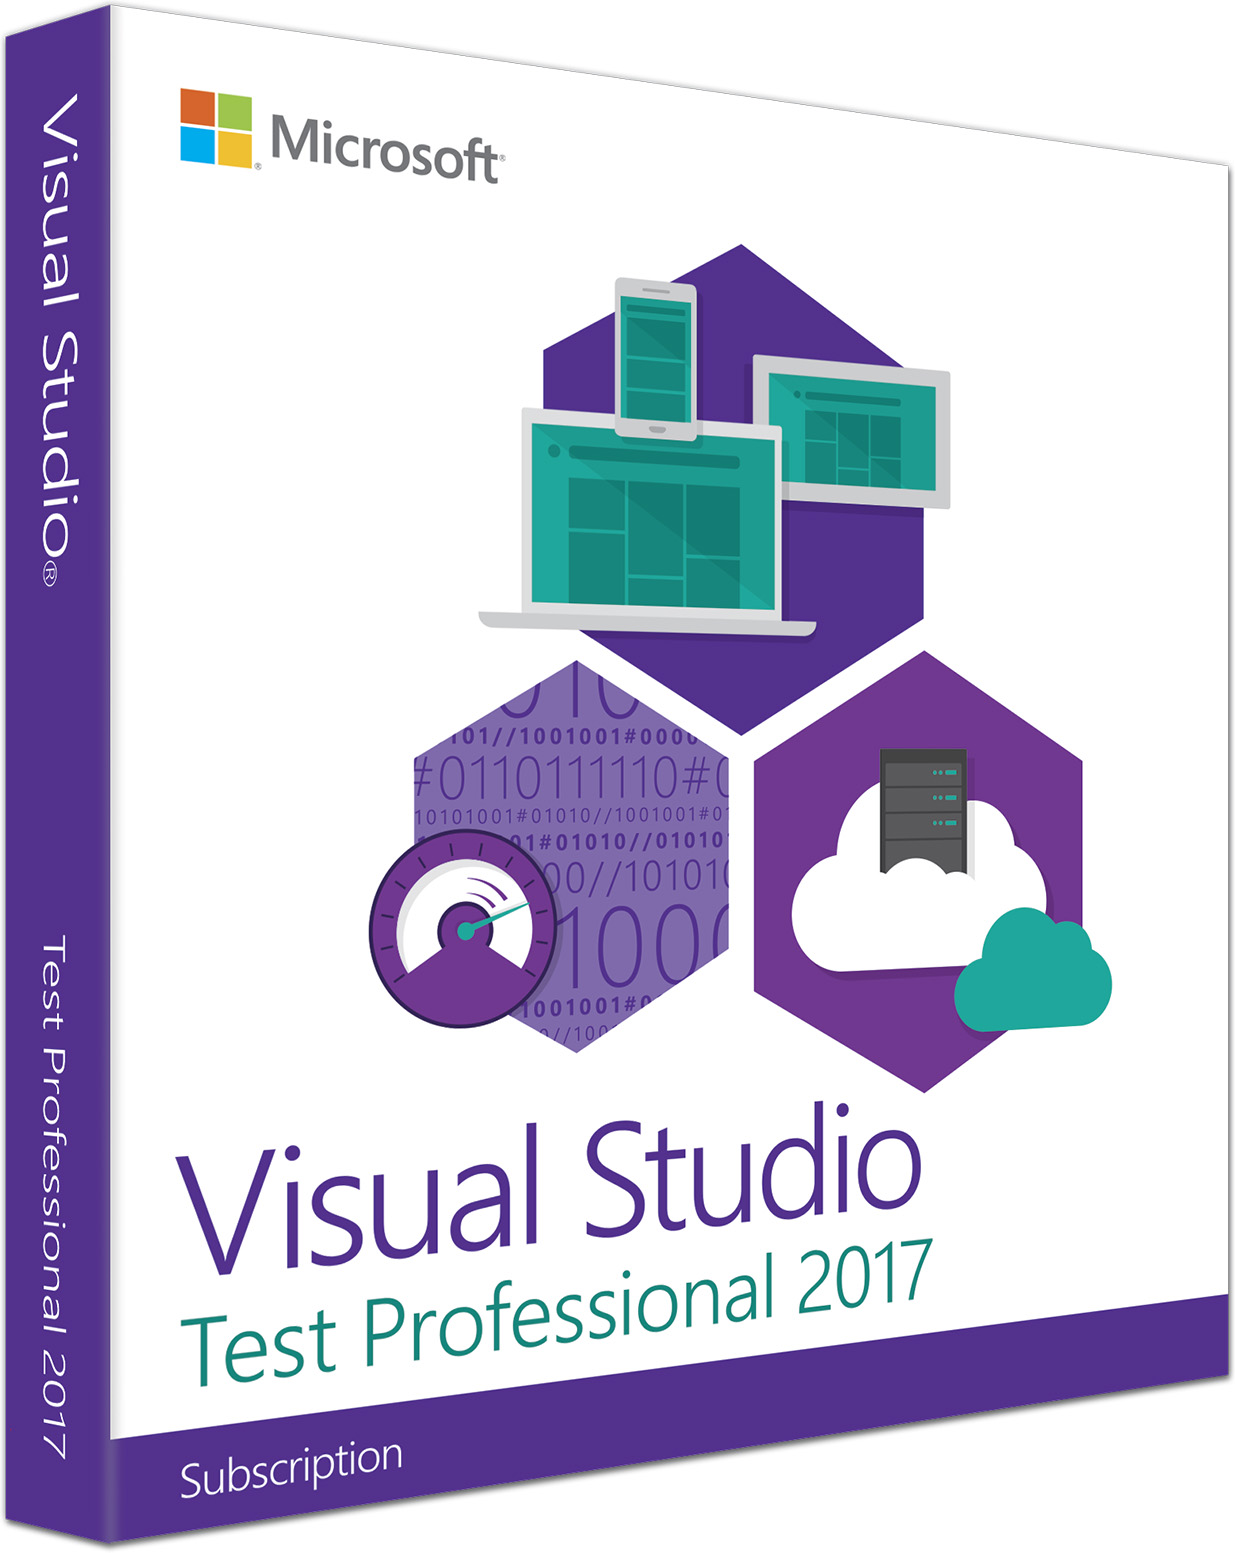 visual-studio-test-professional-subscription-renewal